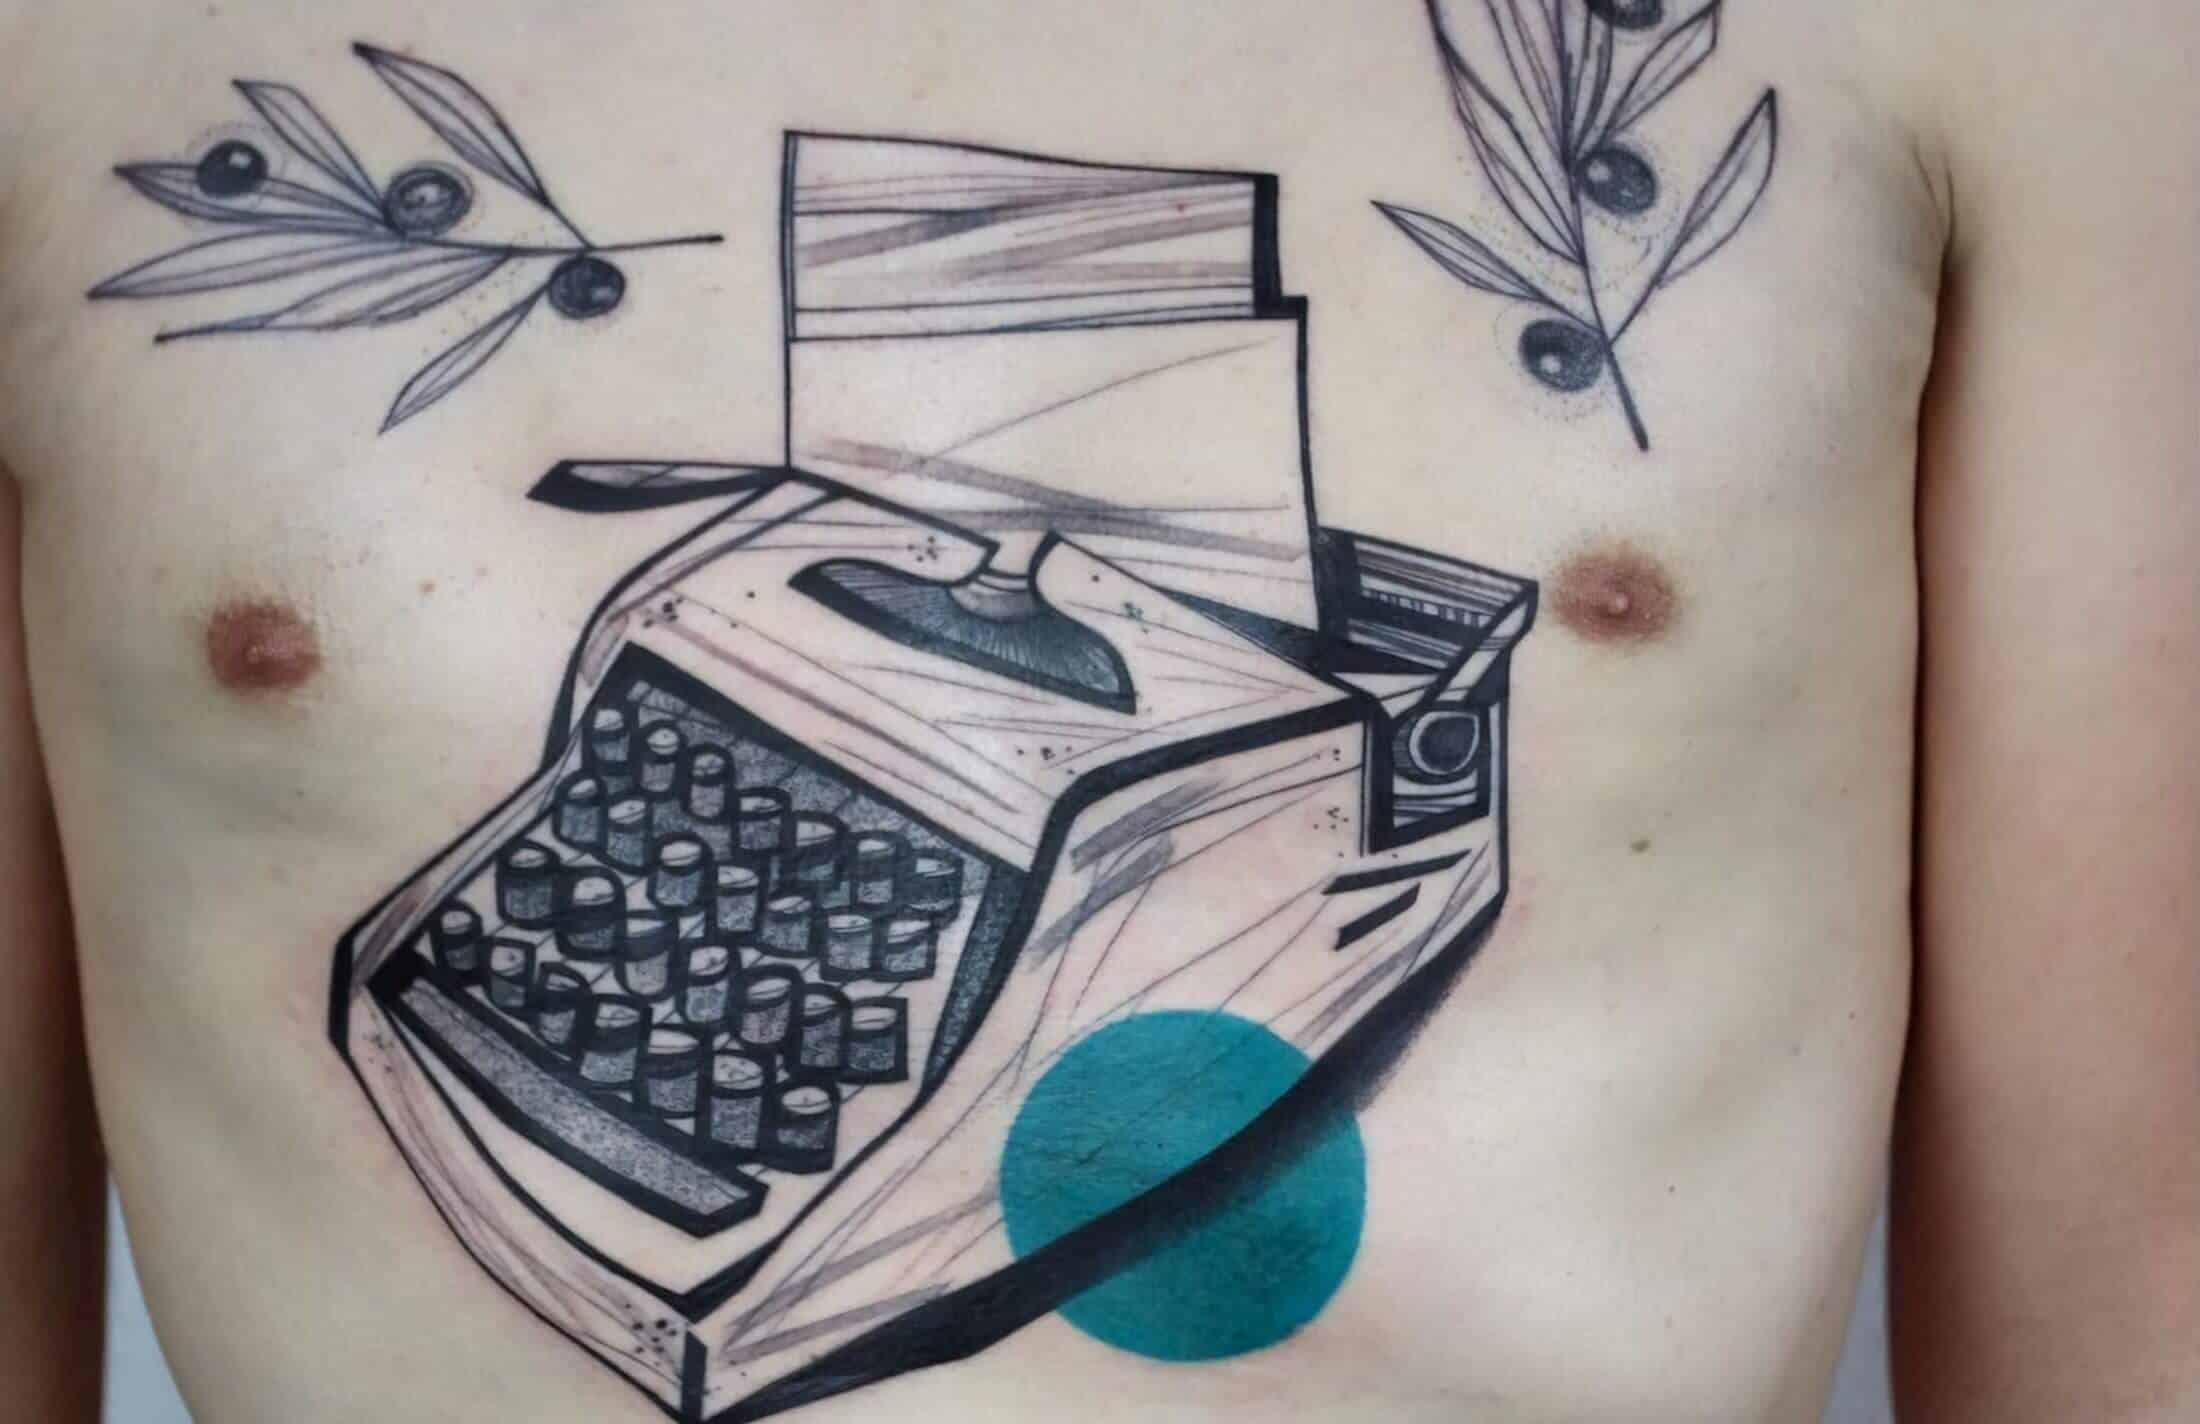 illustrative tattoo by chest.